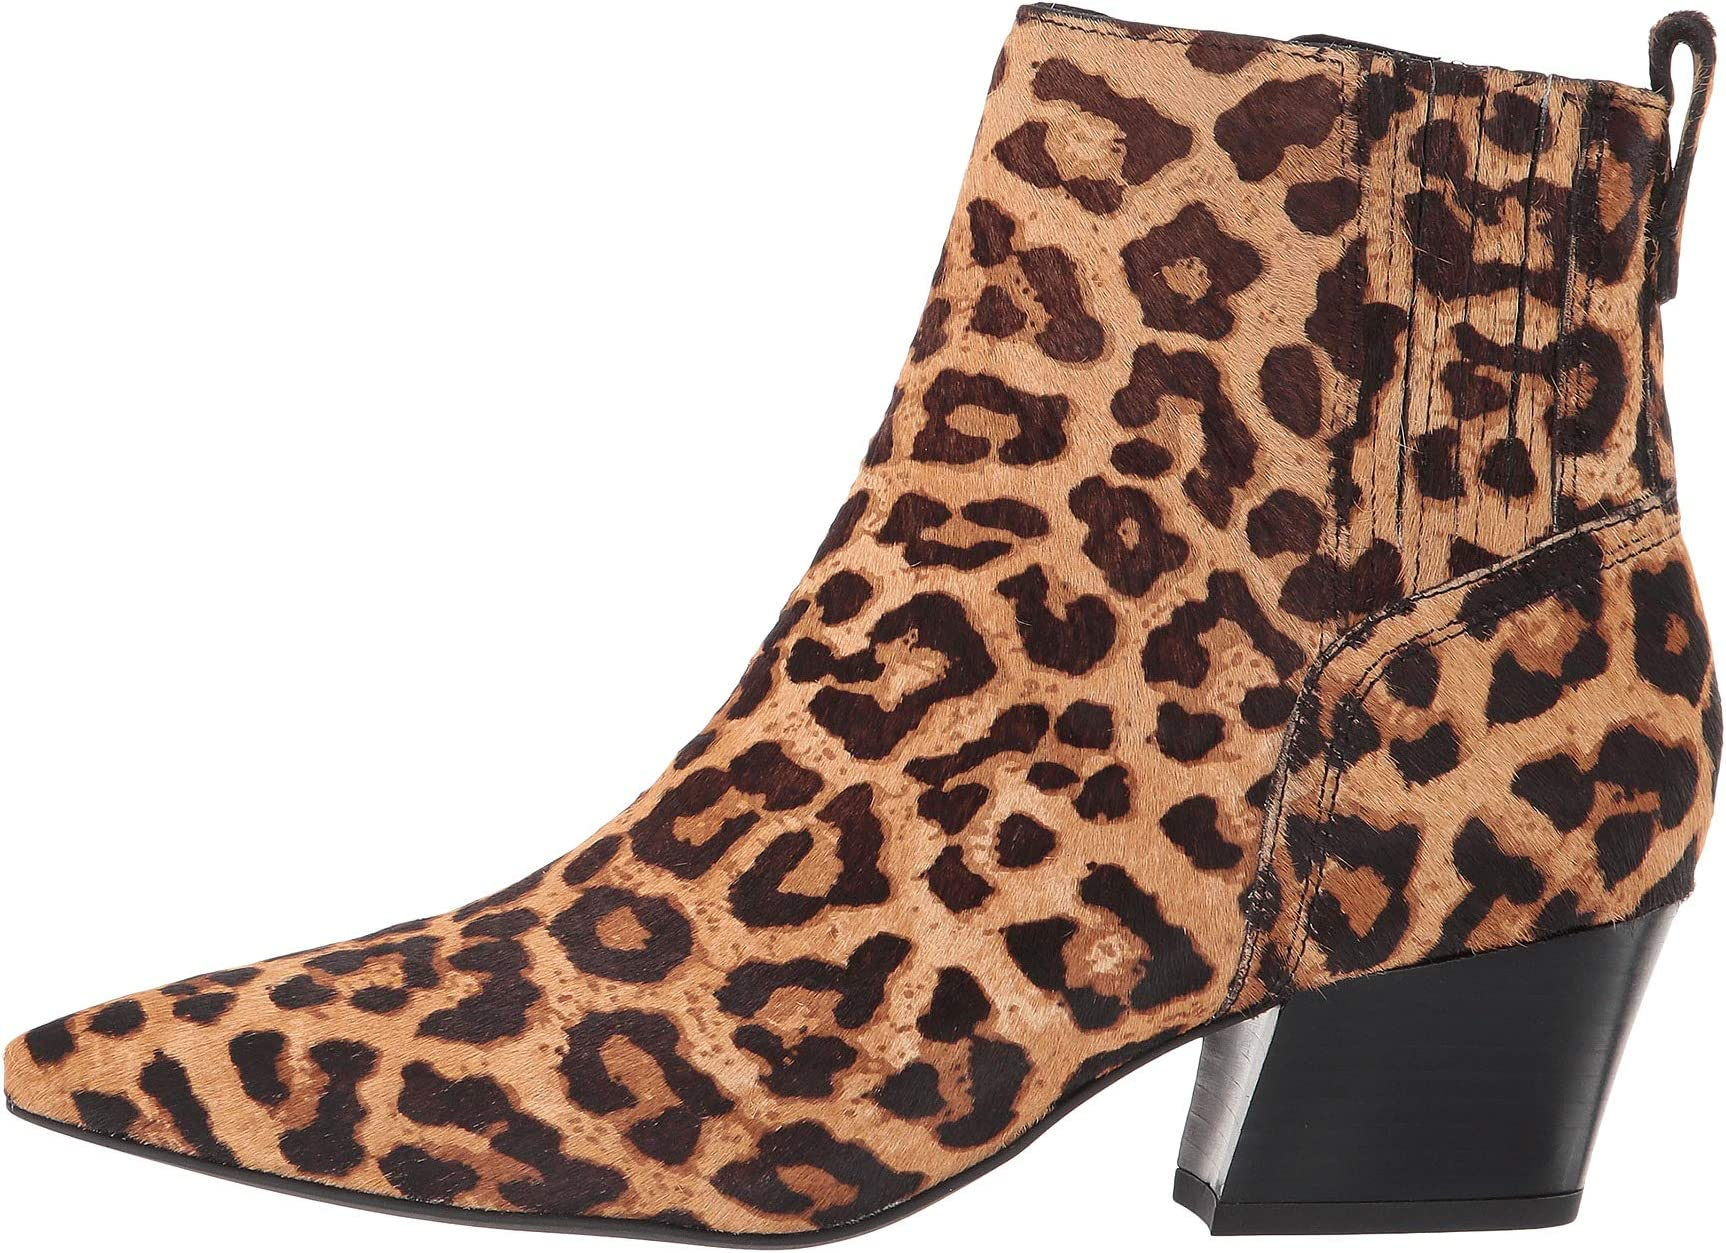 Franco Sarto Luca by SARTO | Women's shoes | 2020 Newest